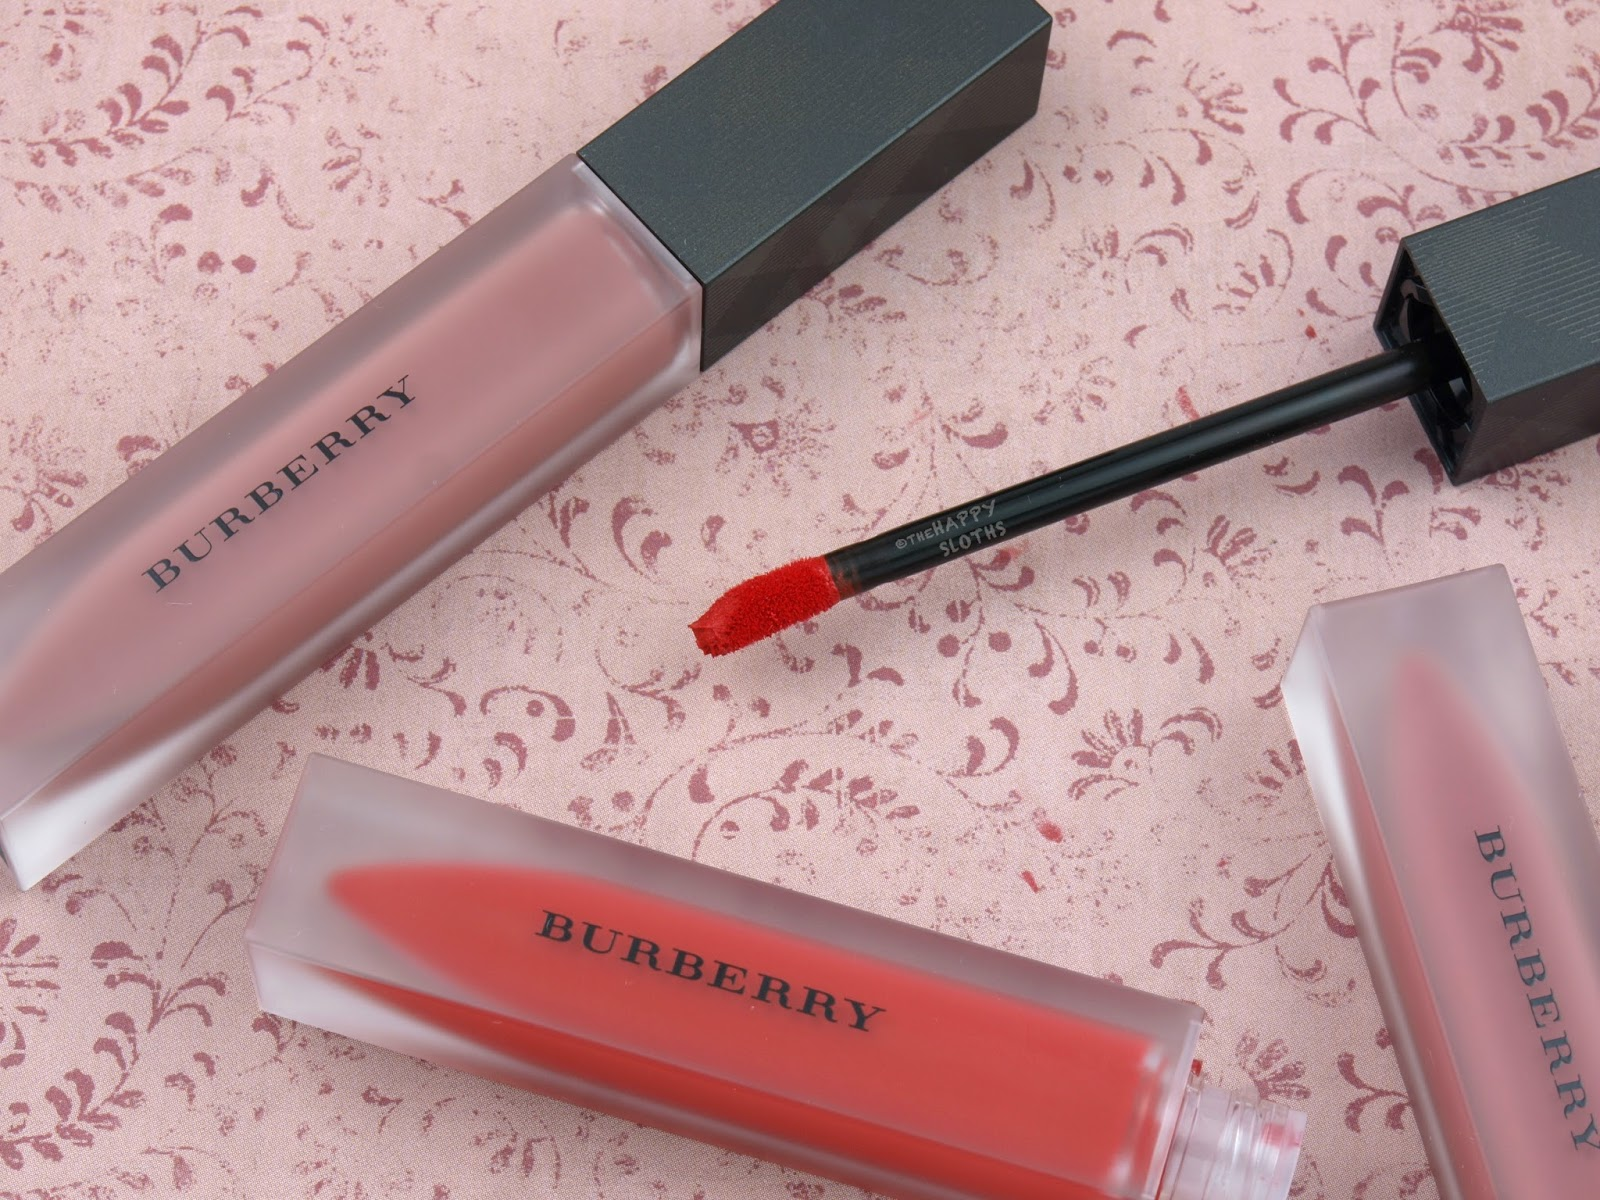 Burberry Liquid Lip Velvet: Review and Swatches